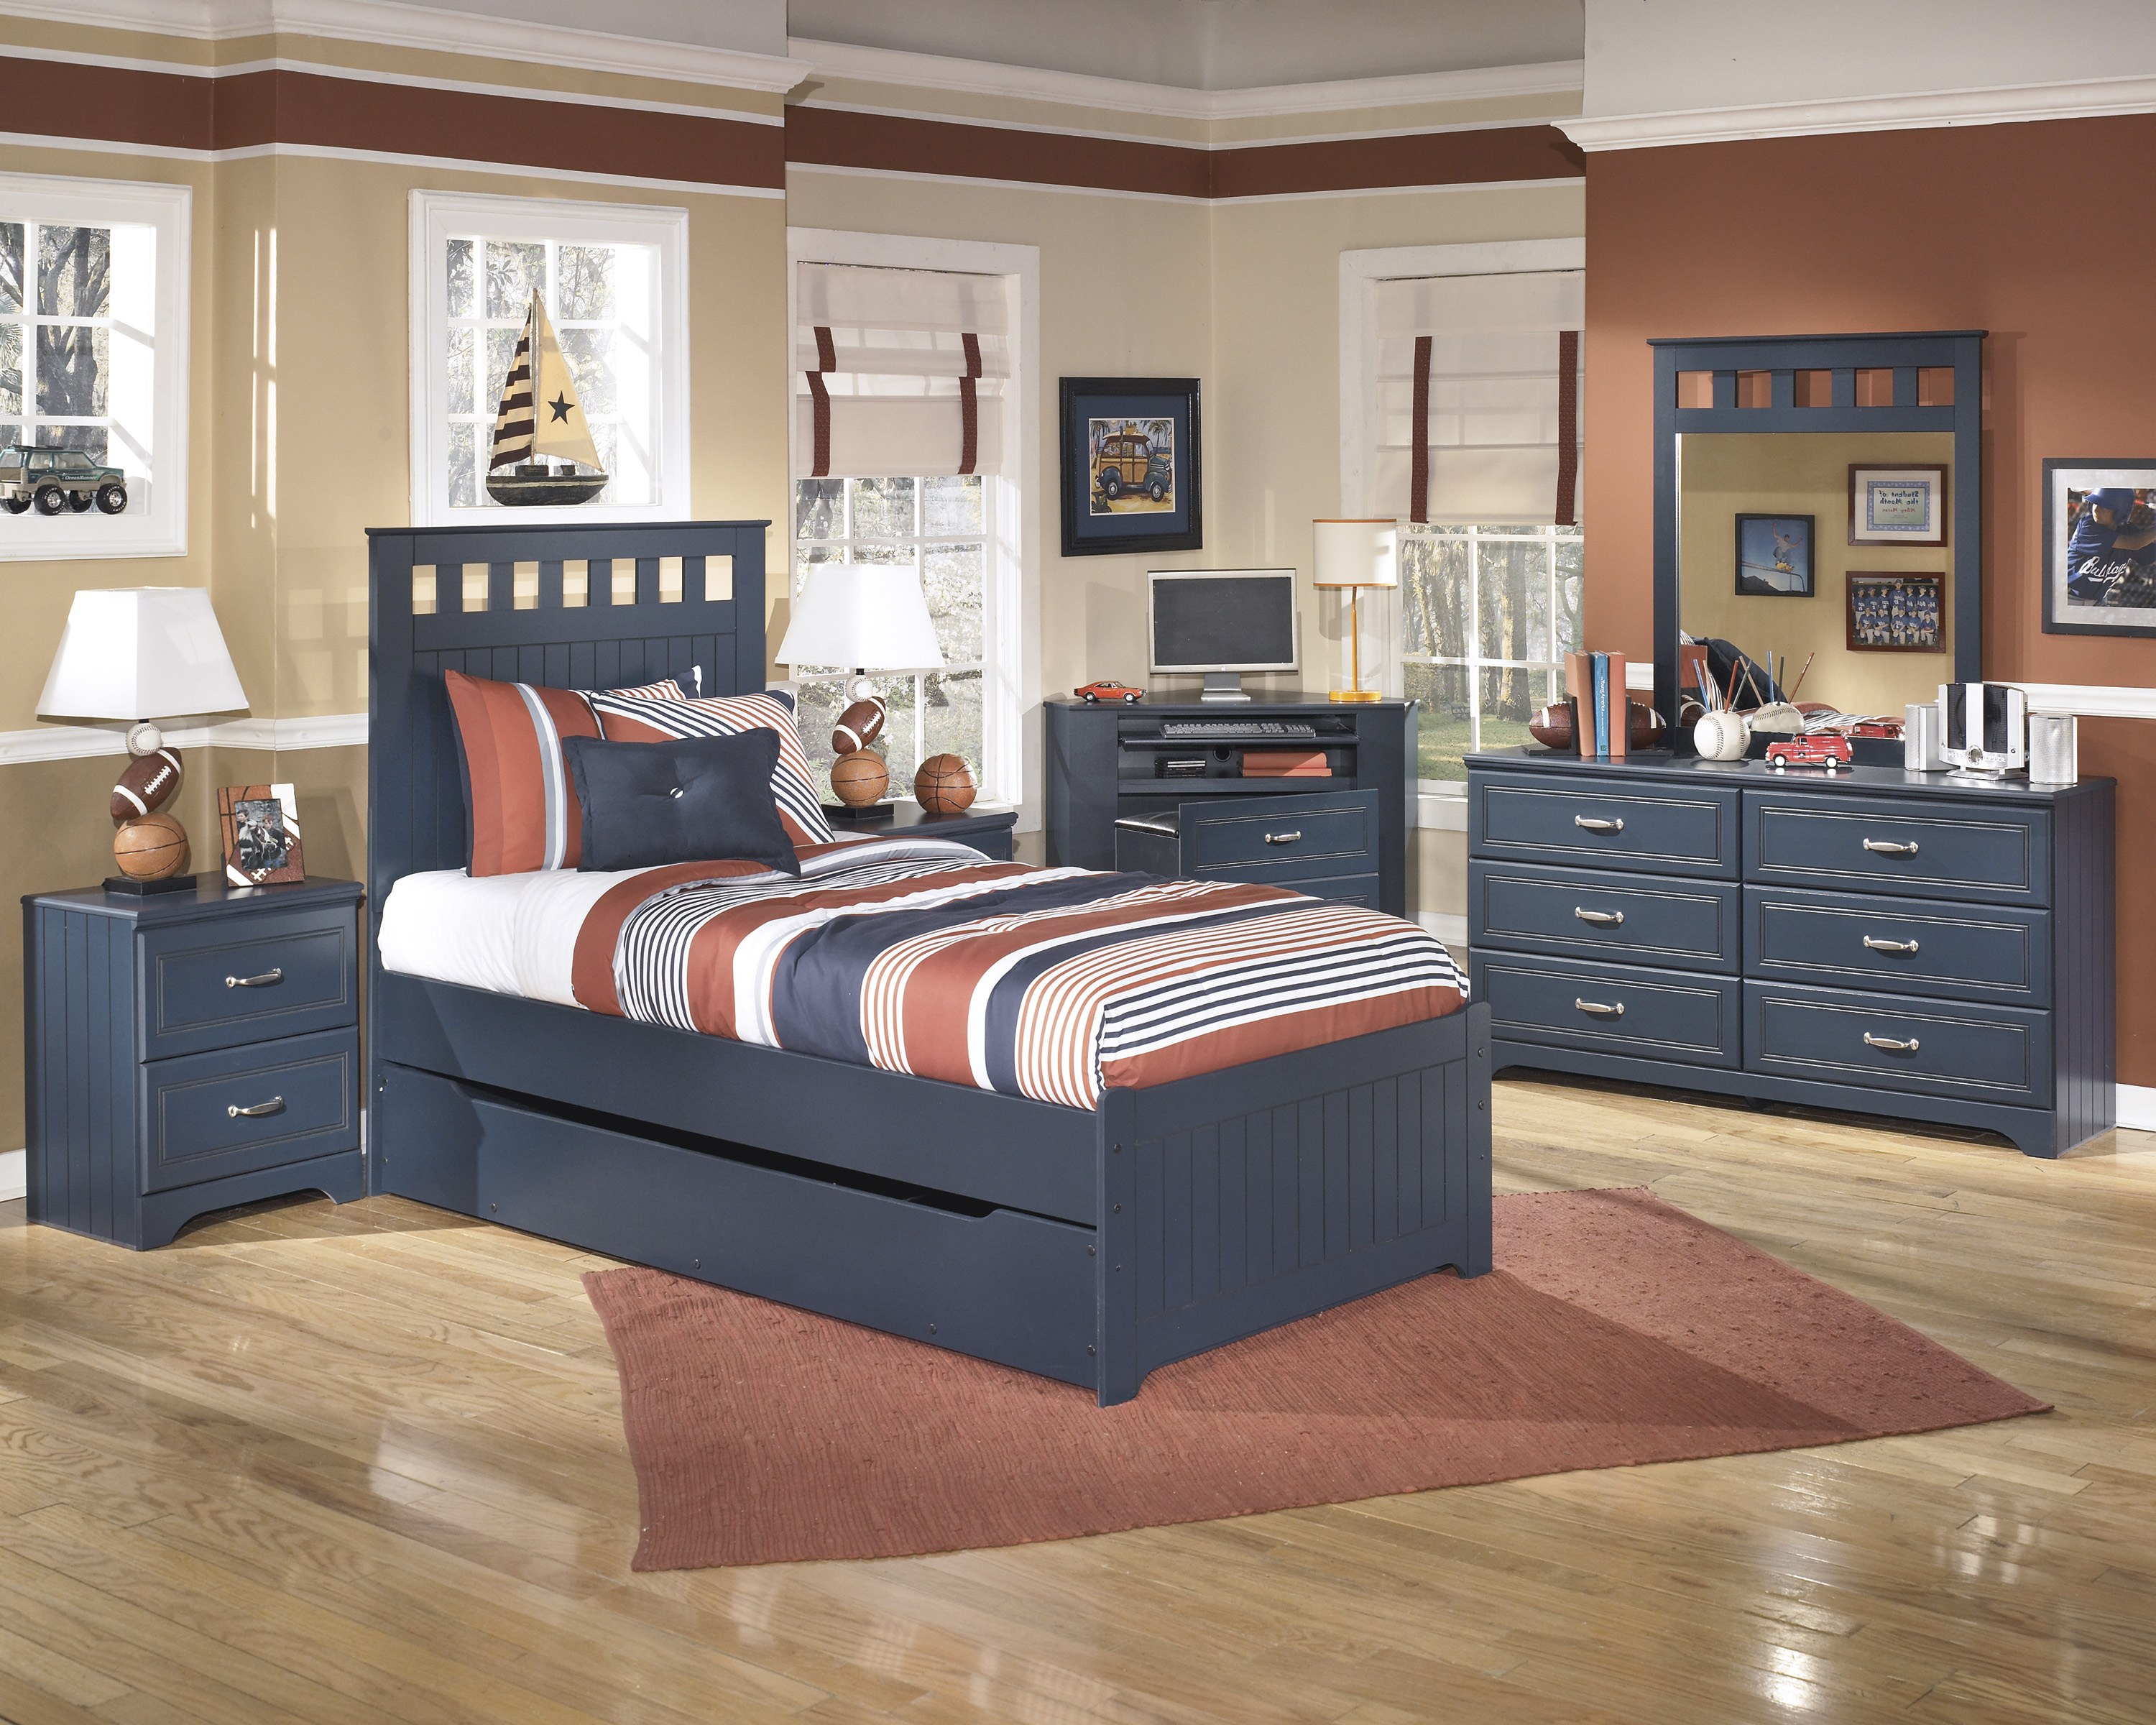 bedroom category best lulu ashley product youth mentor oh zayley furniture dresser dealer store